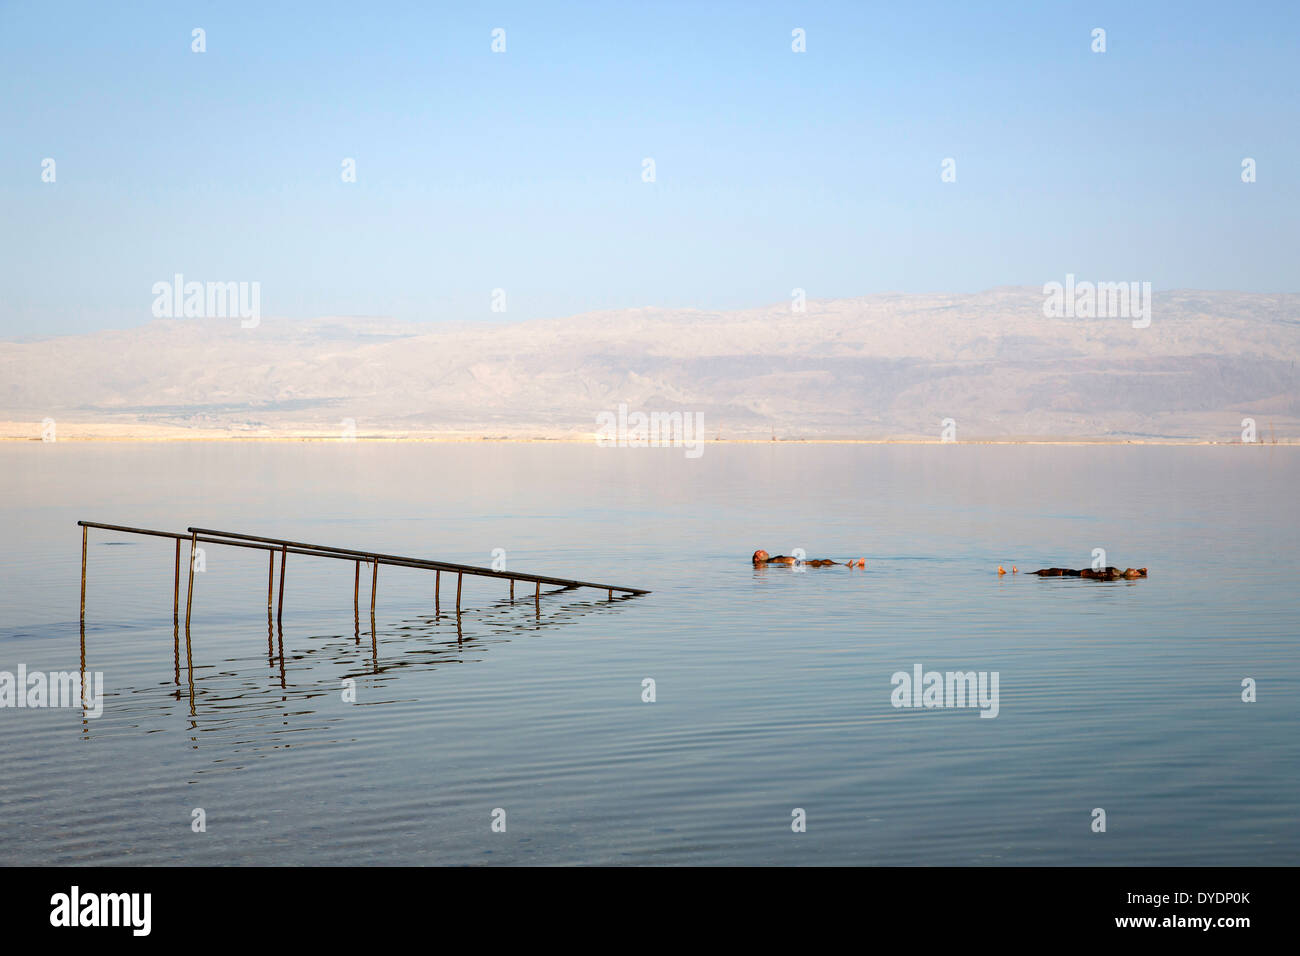 People floating at the Dead Sea, Israel. Stock Photo